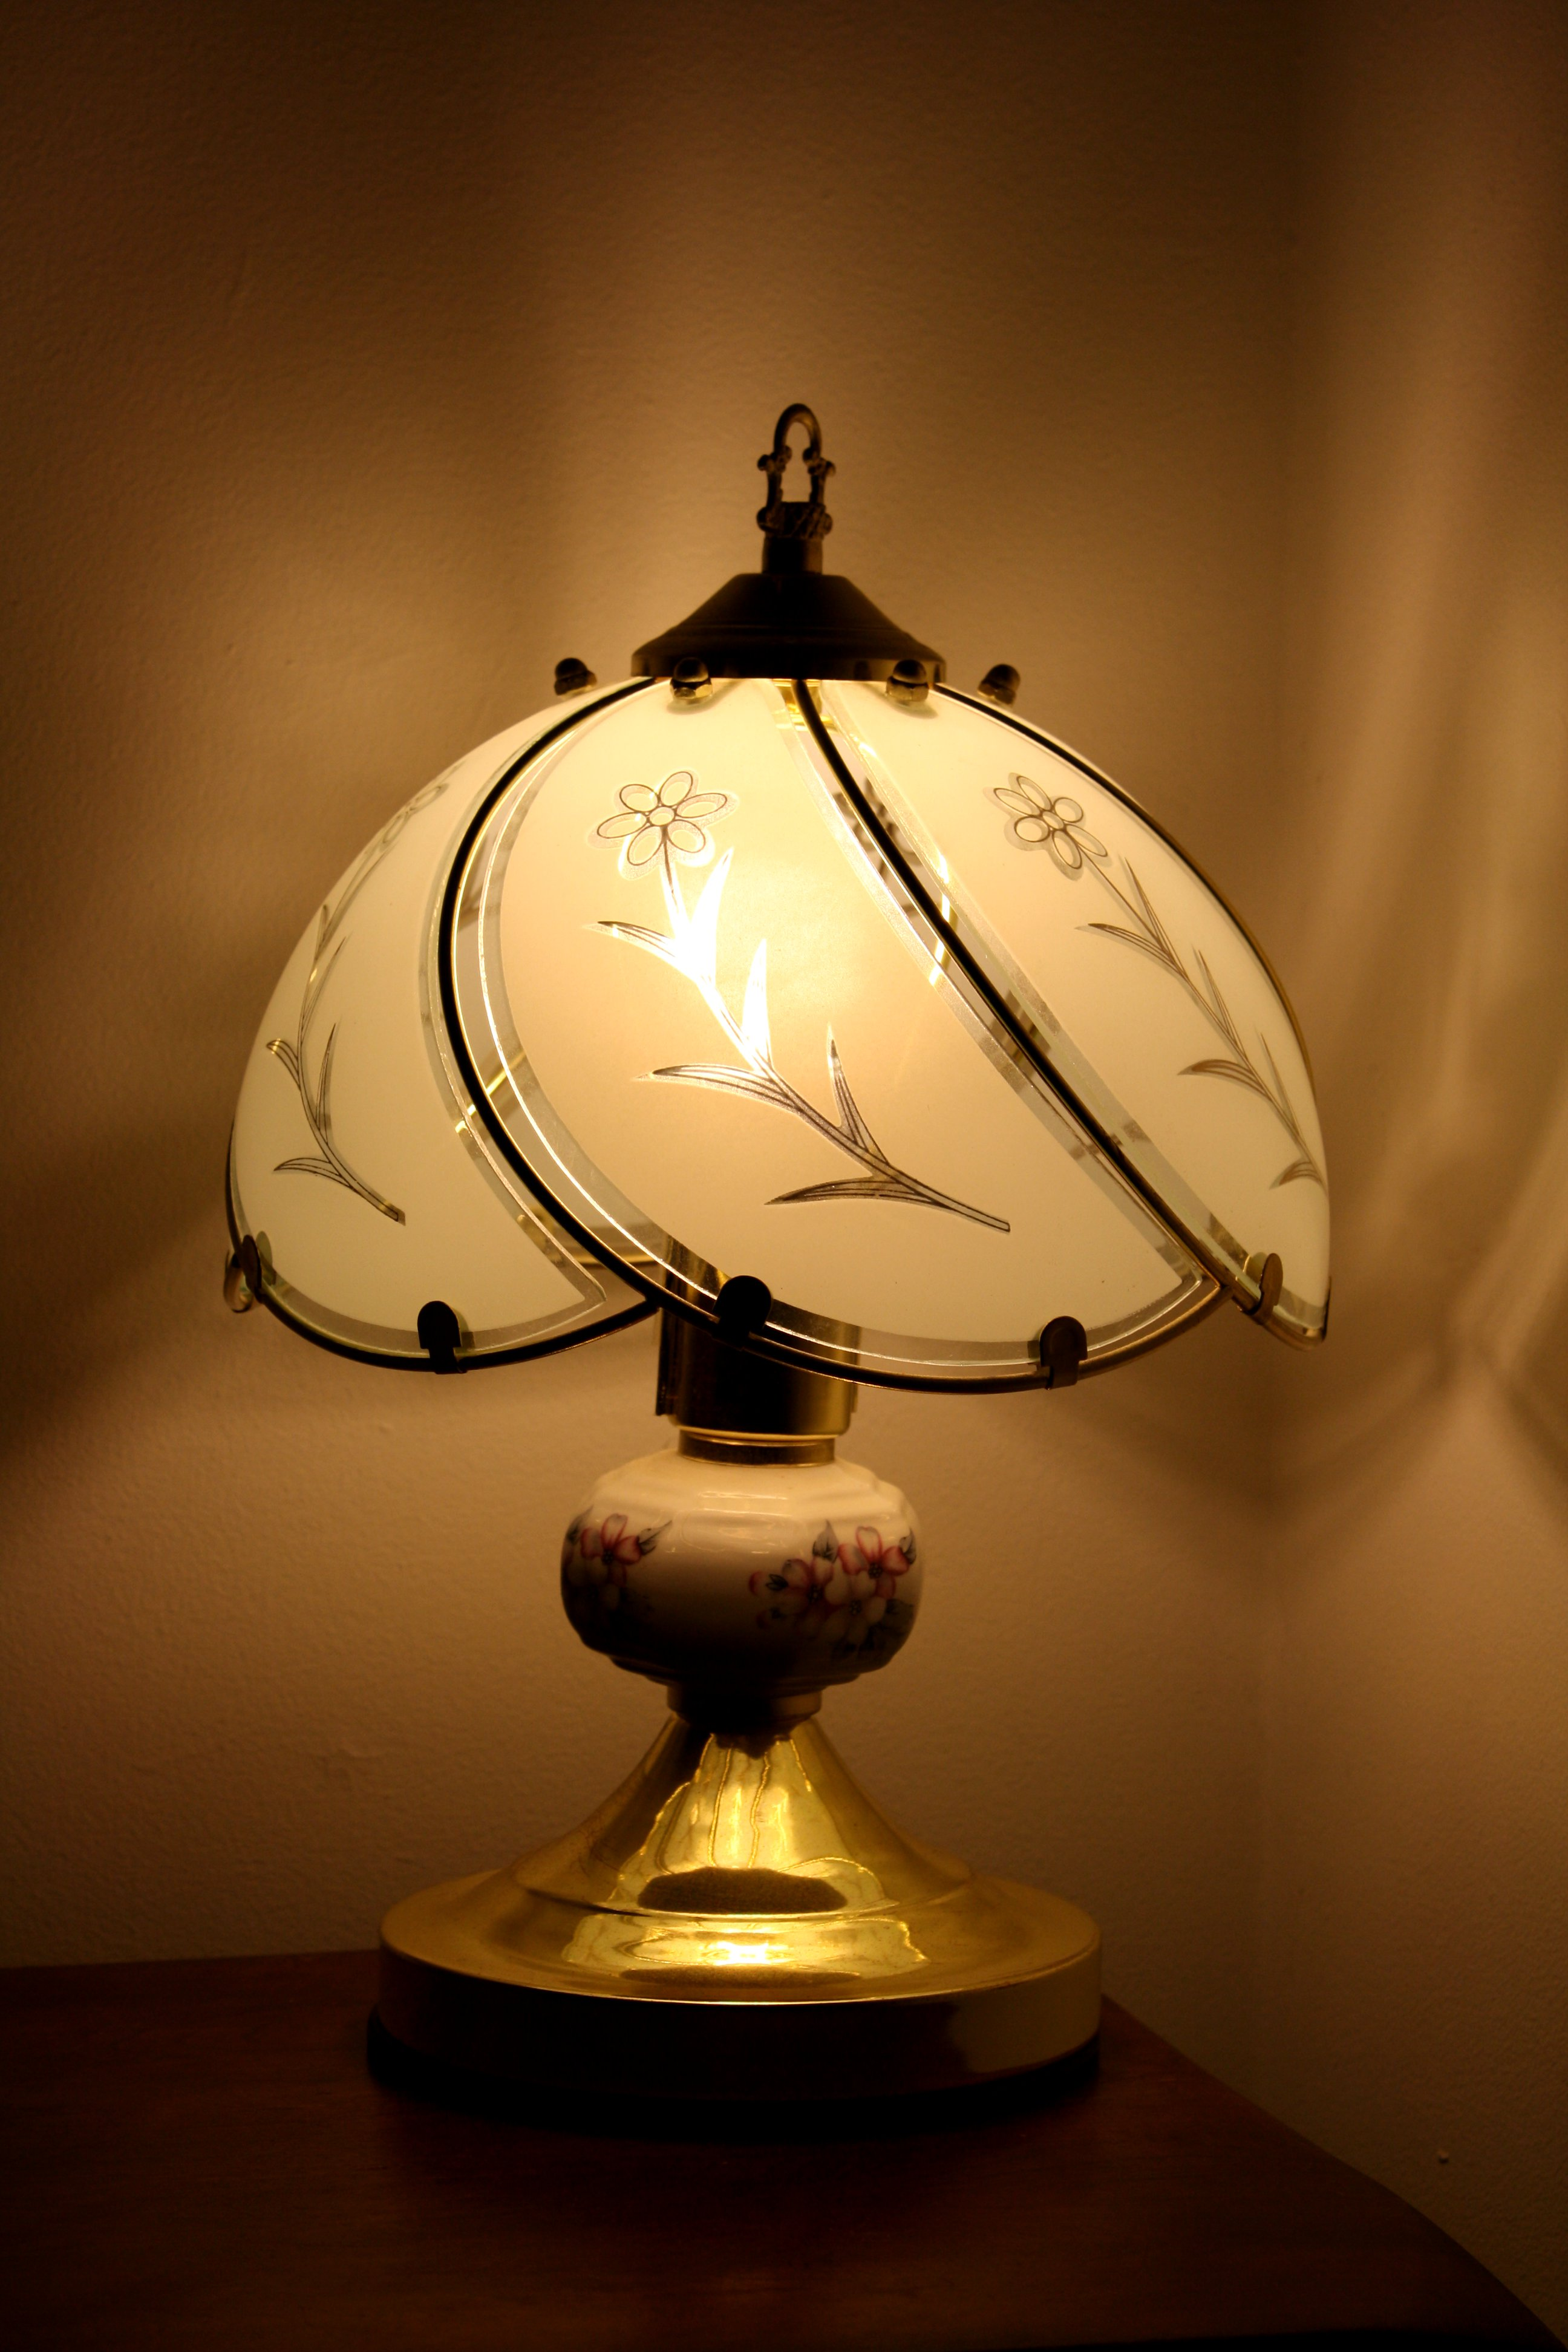 Bedside Lamp With Glass Shade Picture Free Photograph